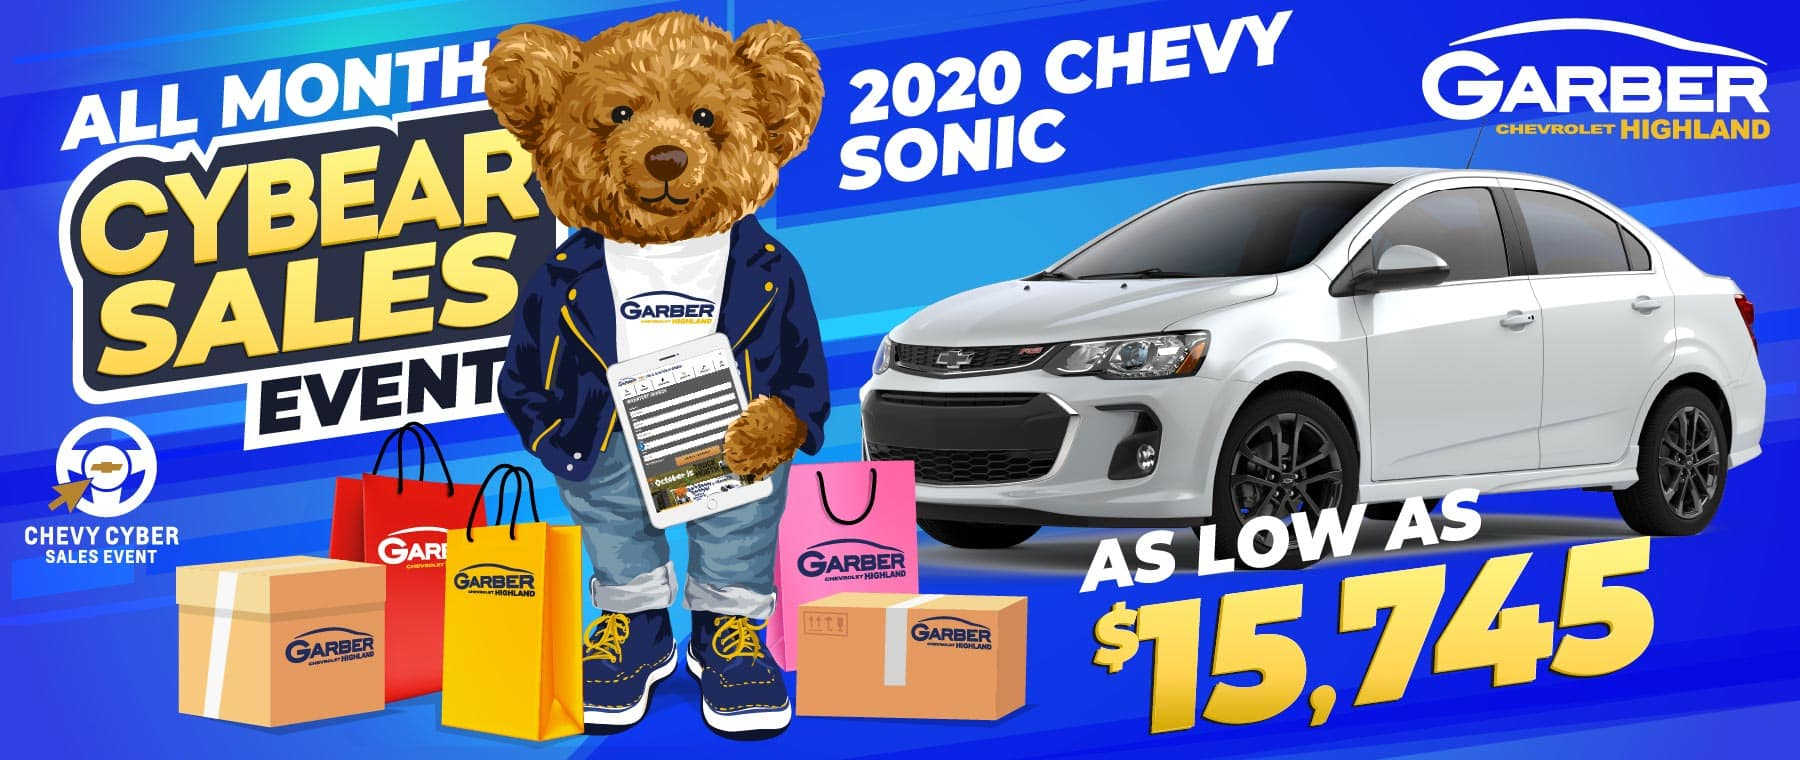 2020 Chevy Sonic - As Low As $15,745